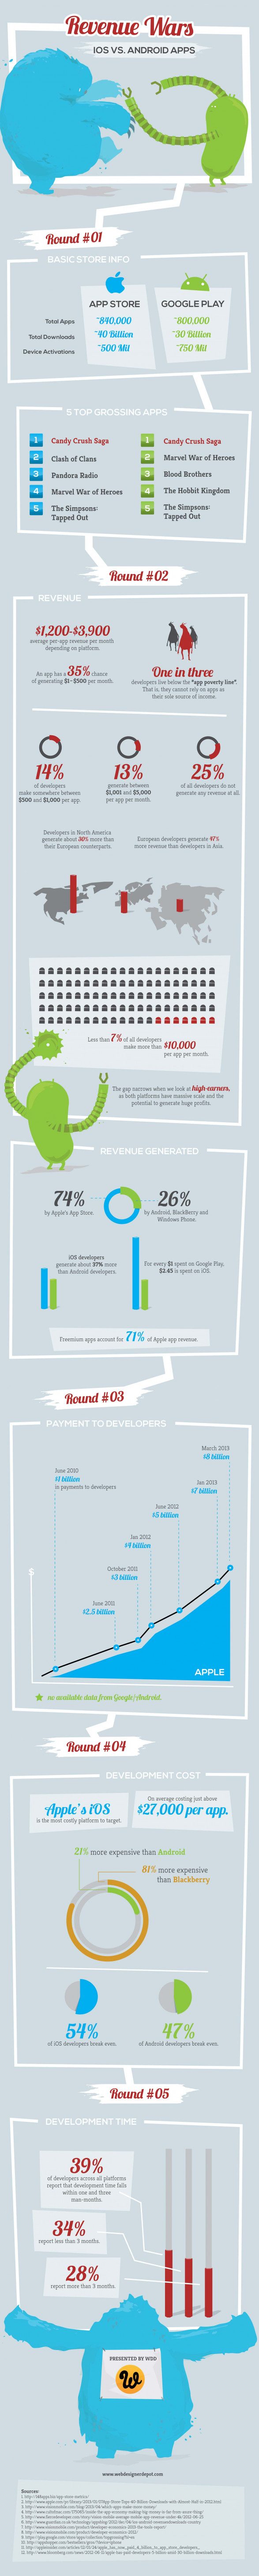 Apple Vs Google Revenue Generation [INFOGRAPHIC]